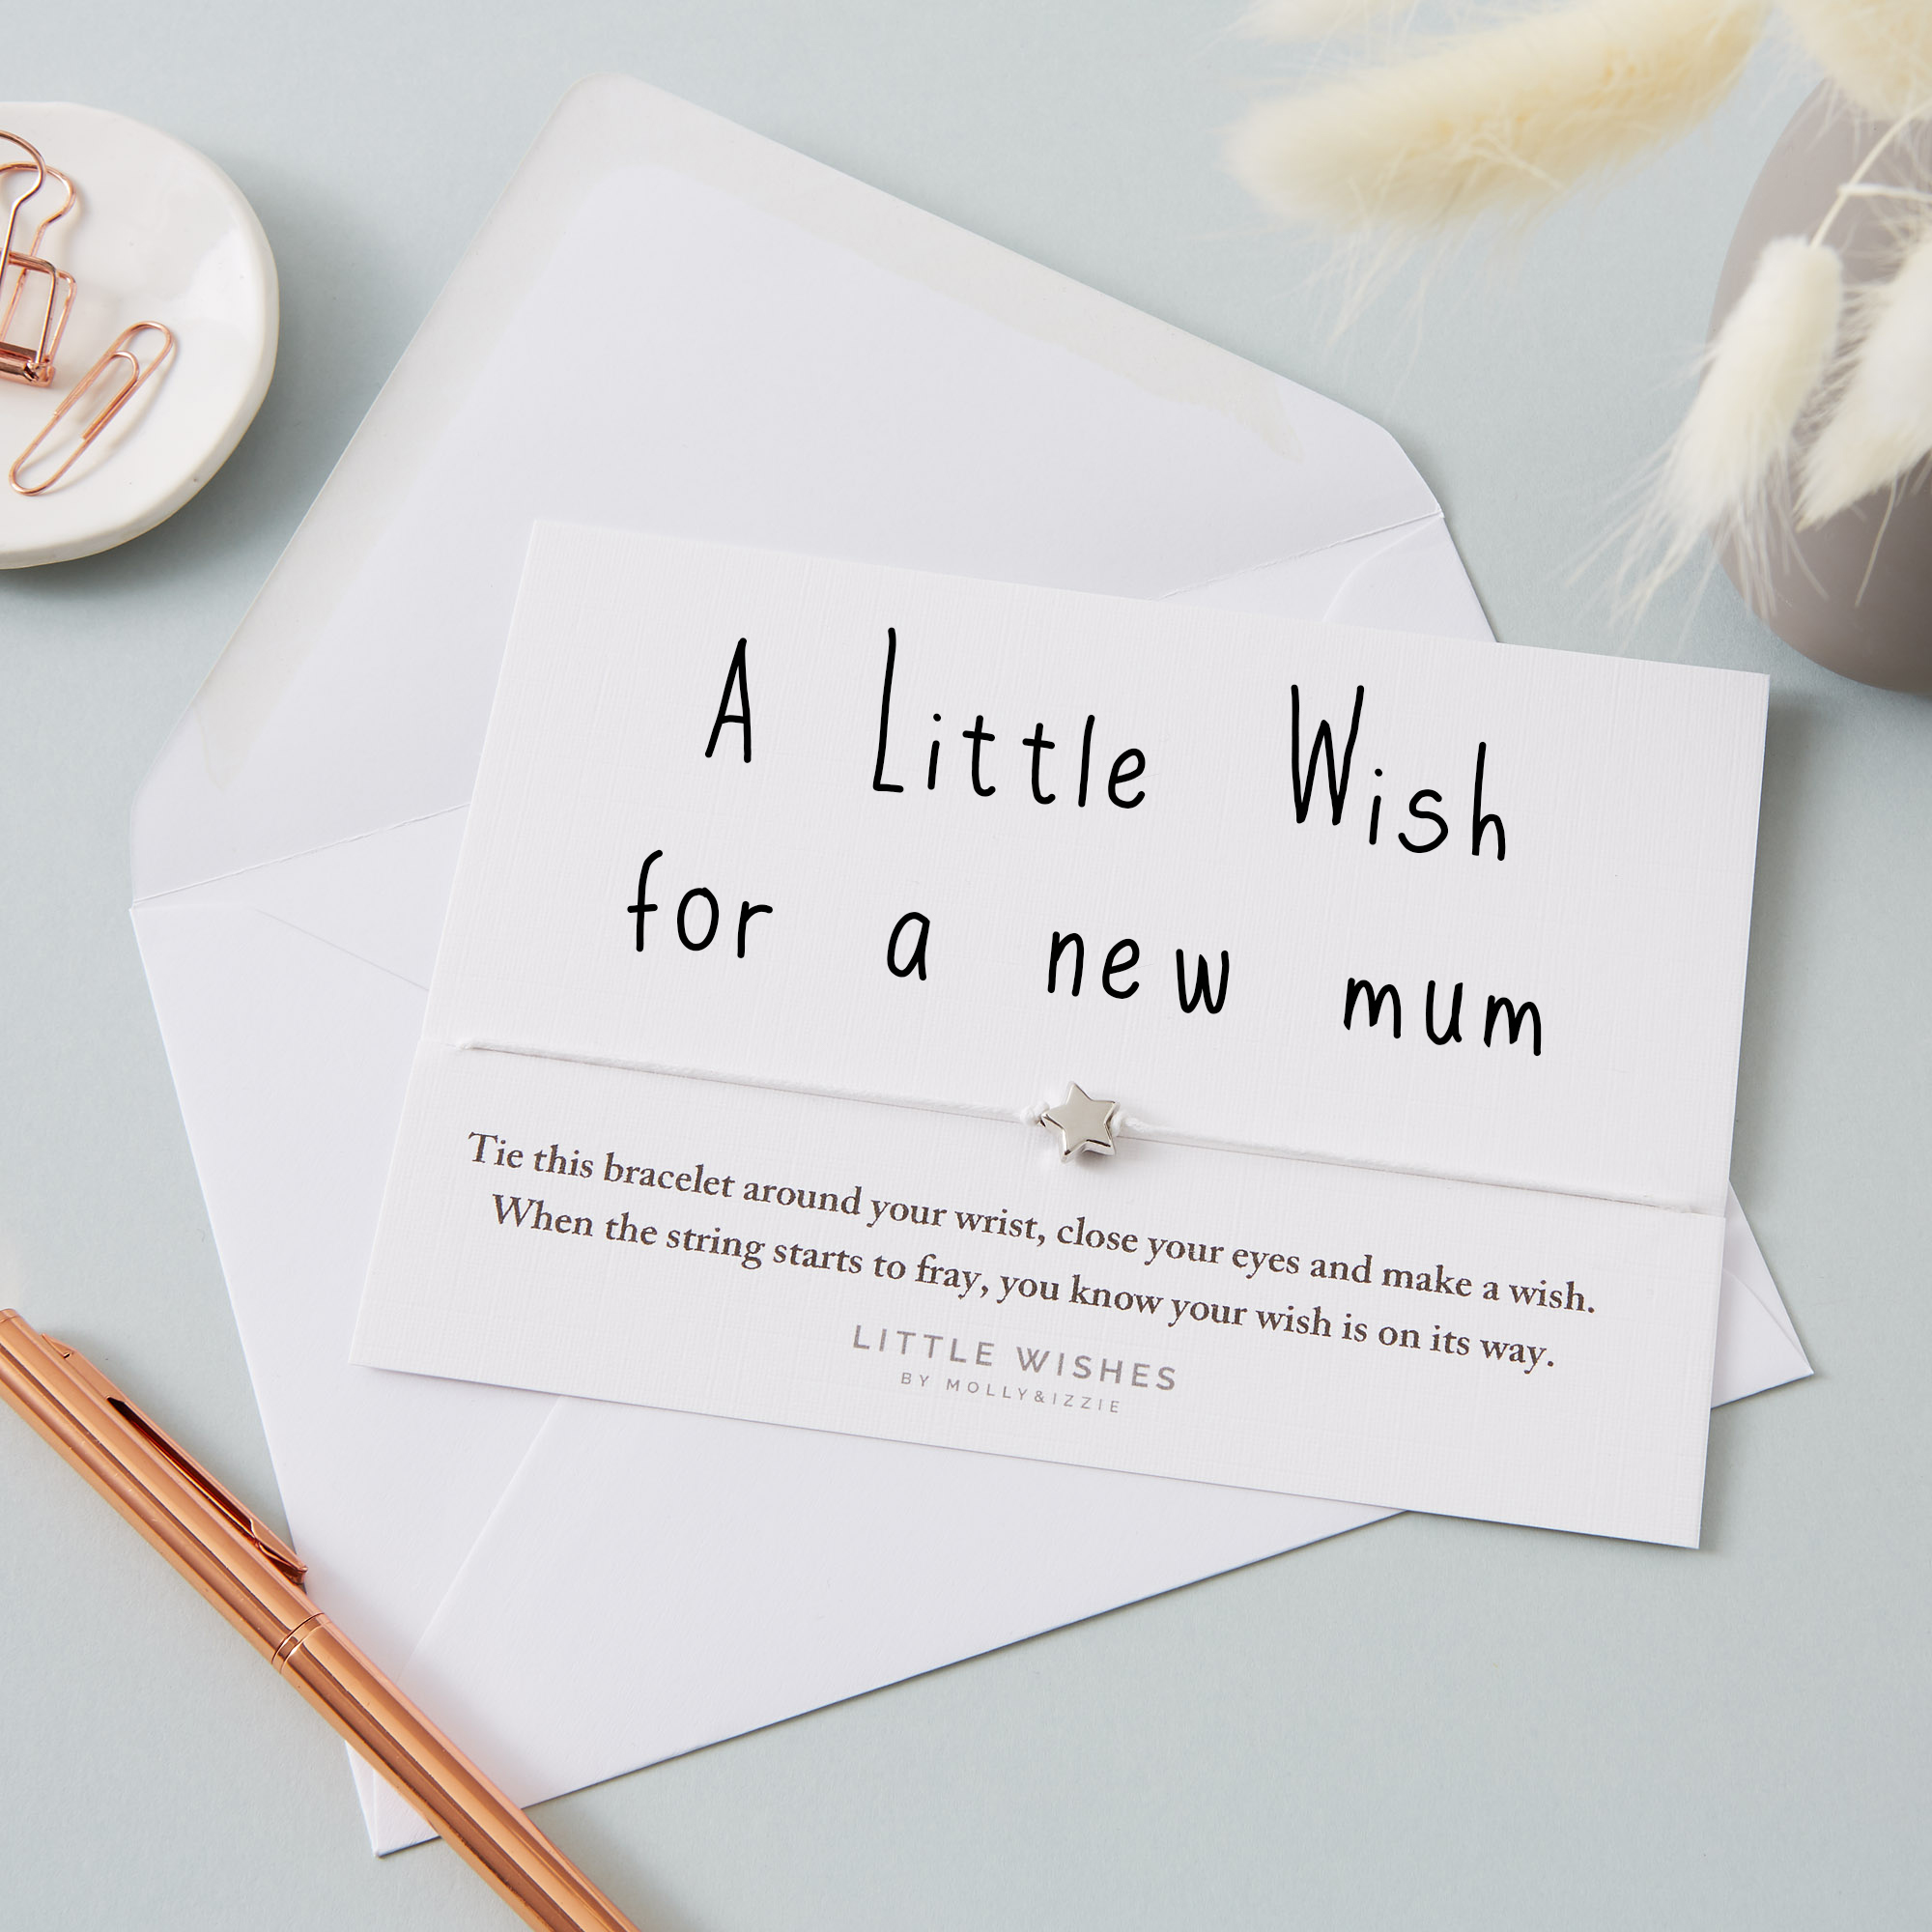 by Molly & Izzie A Little Wish For a New Mum Star Wish Bracelet